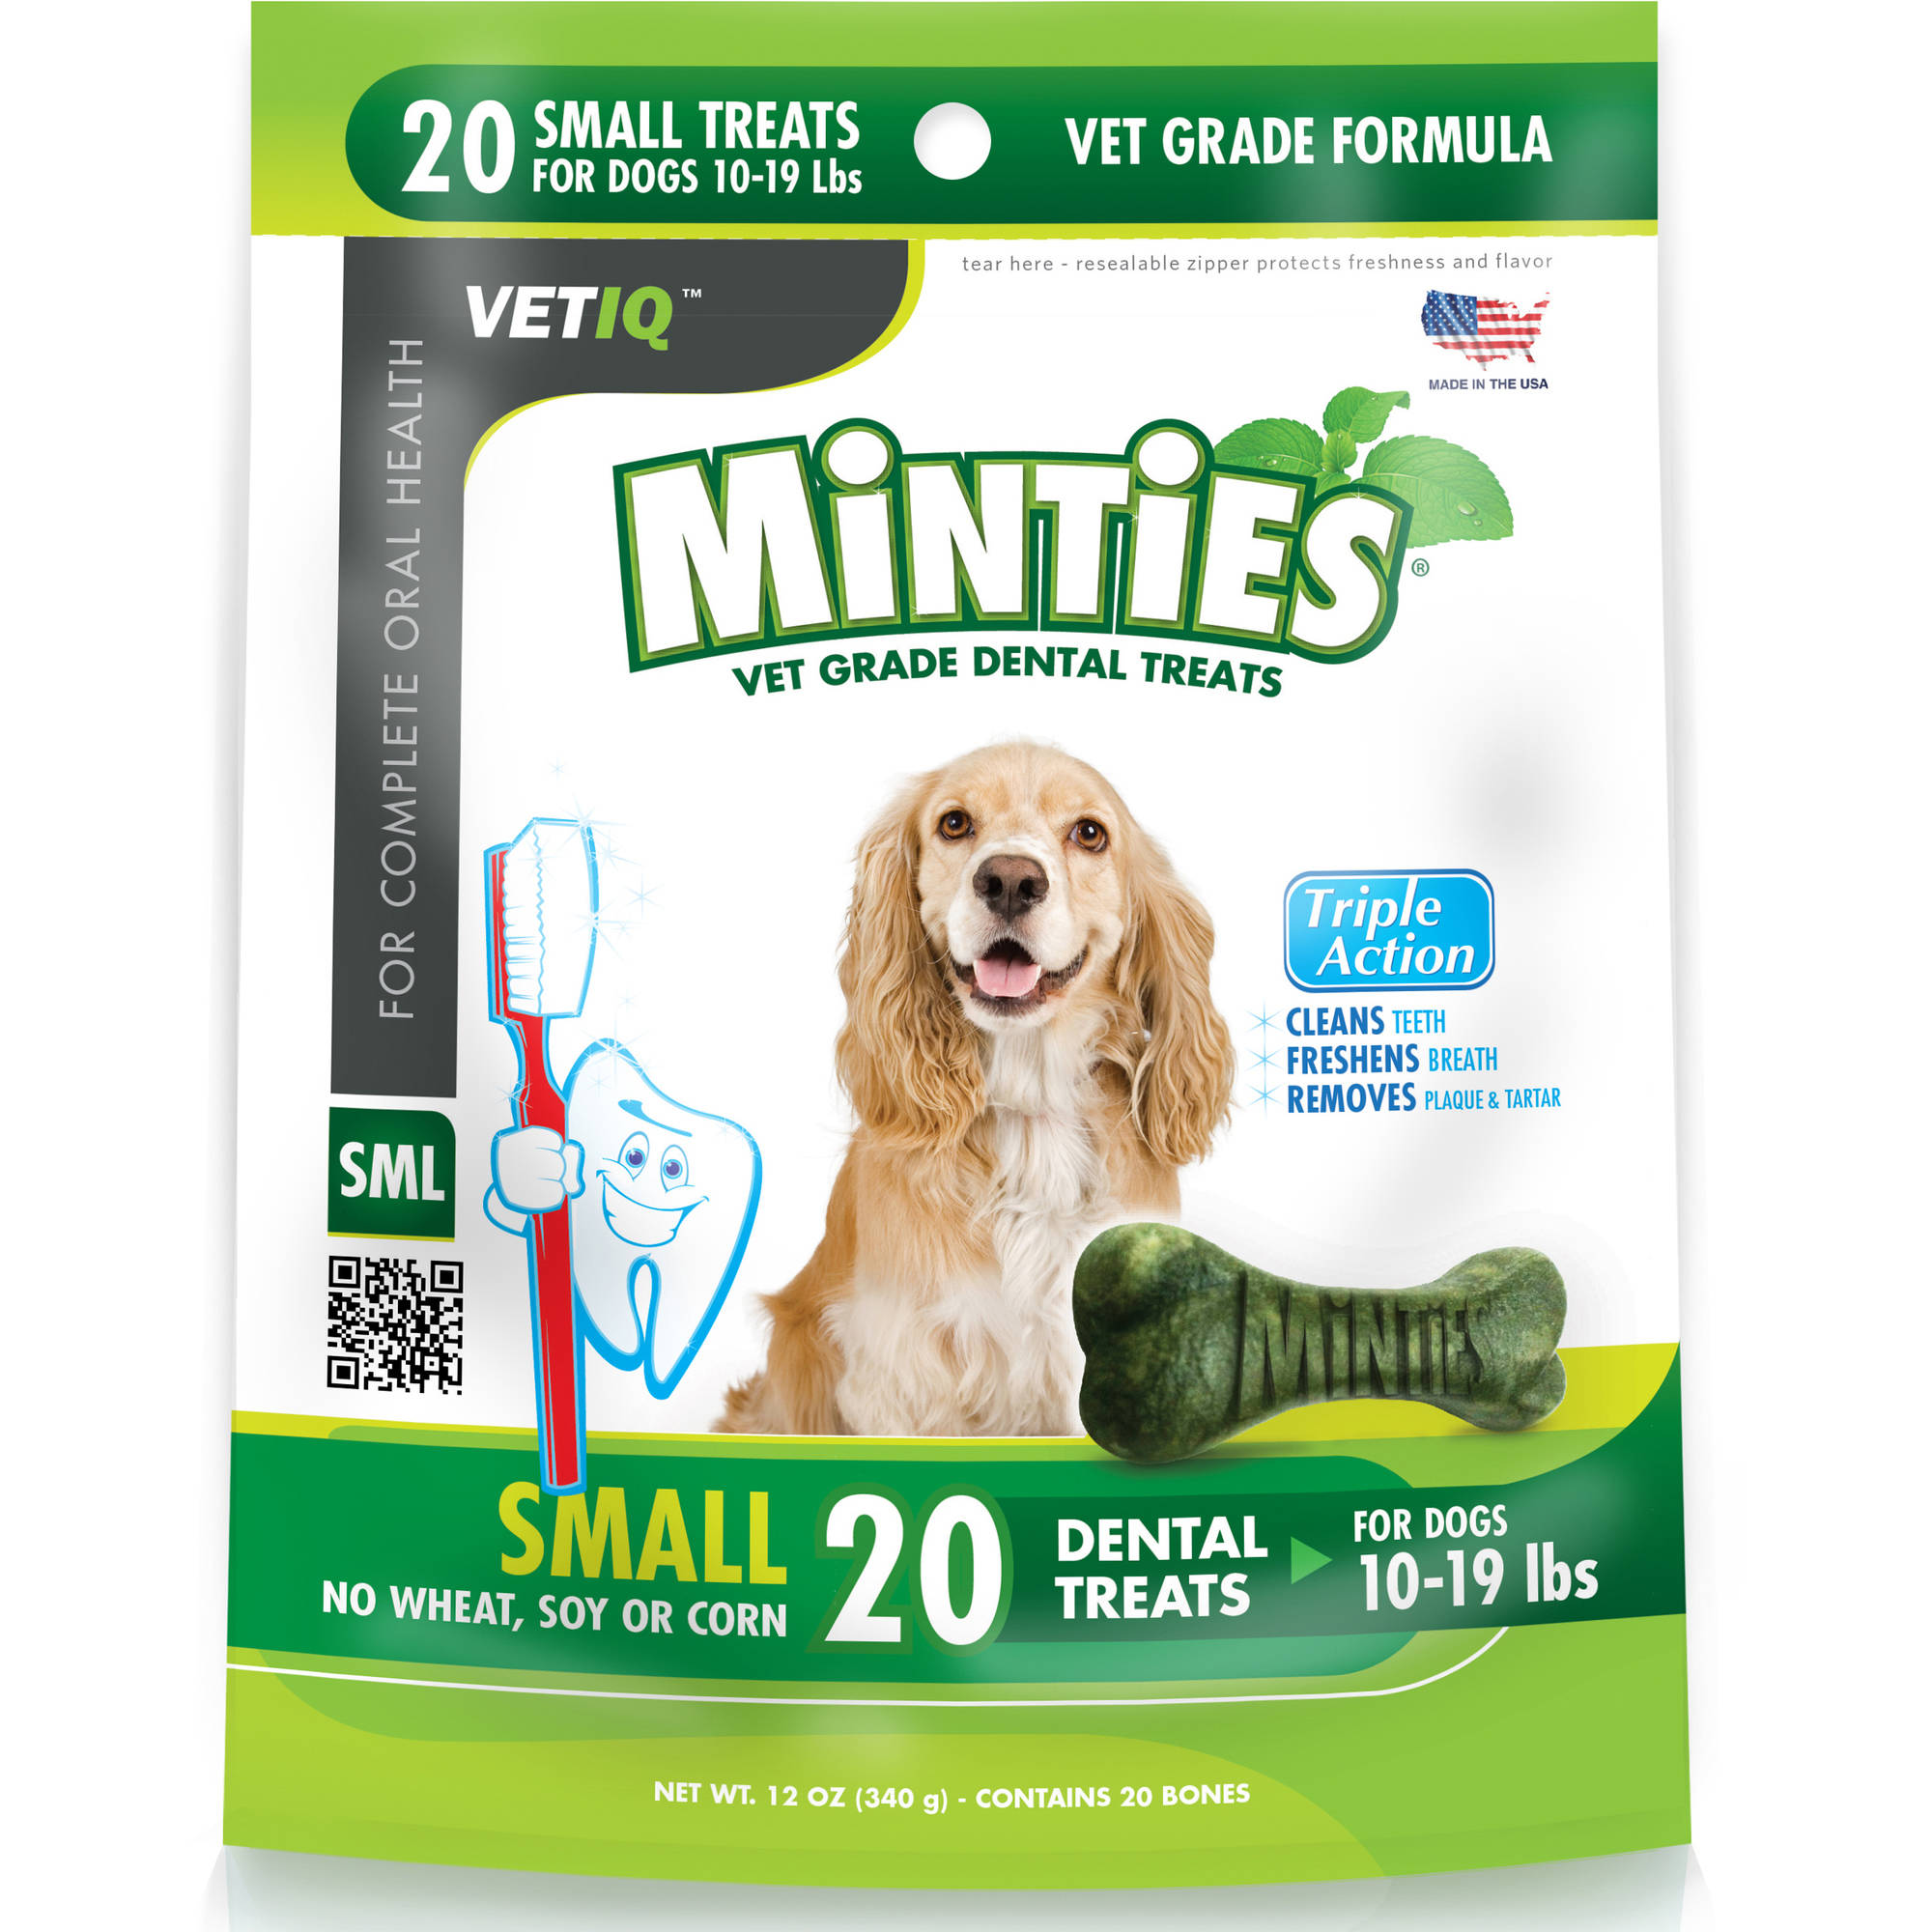 Minties from VetIQ Small Dog Dental Treats, 12 oz